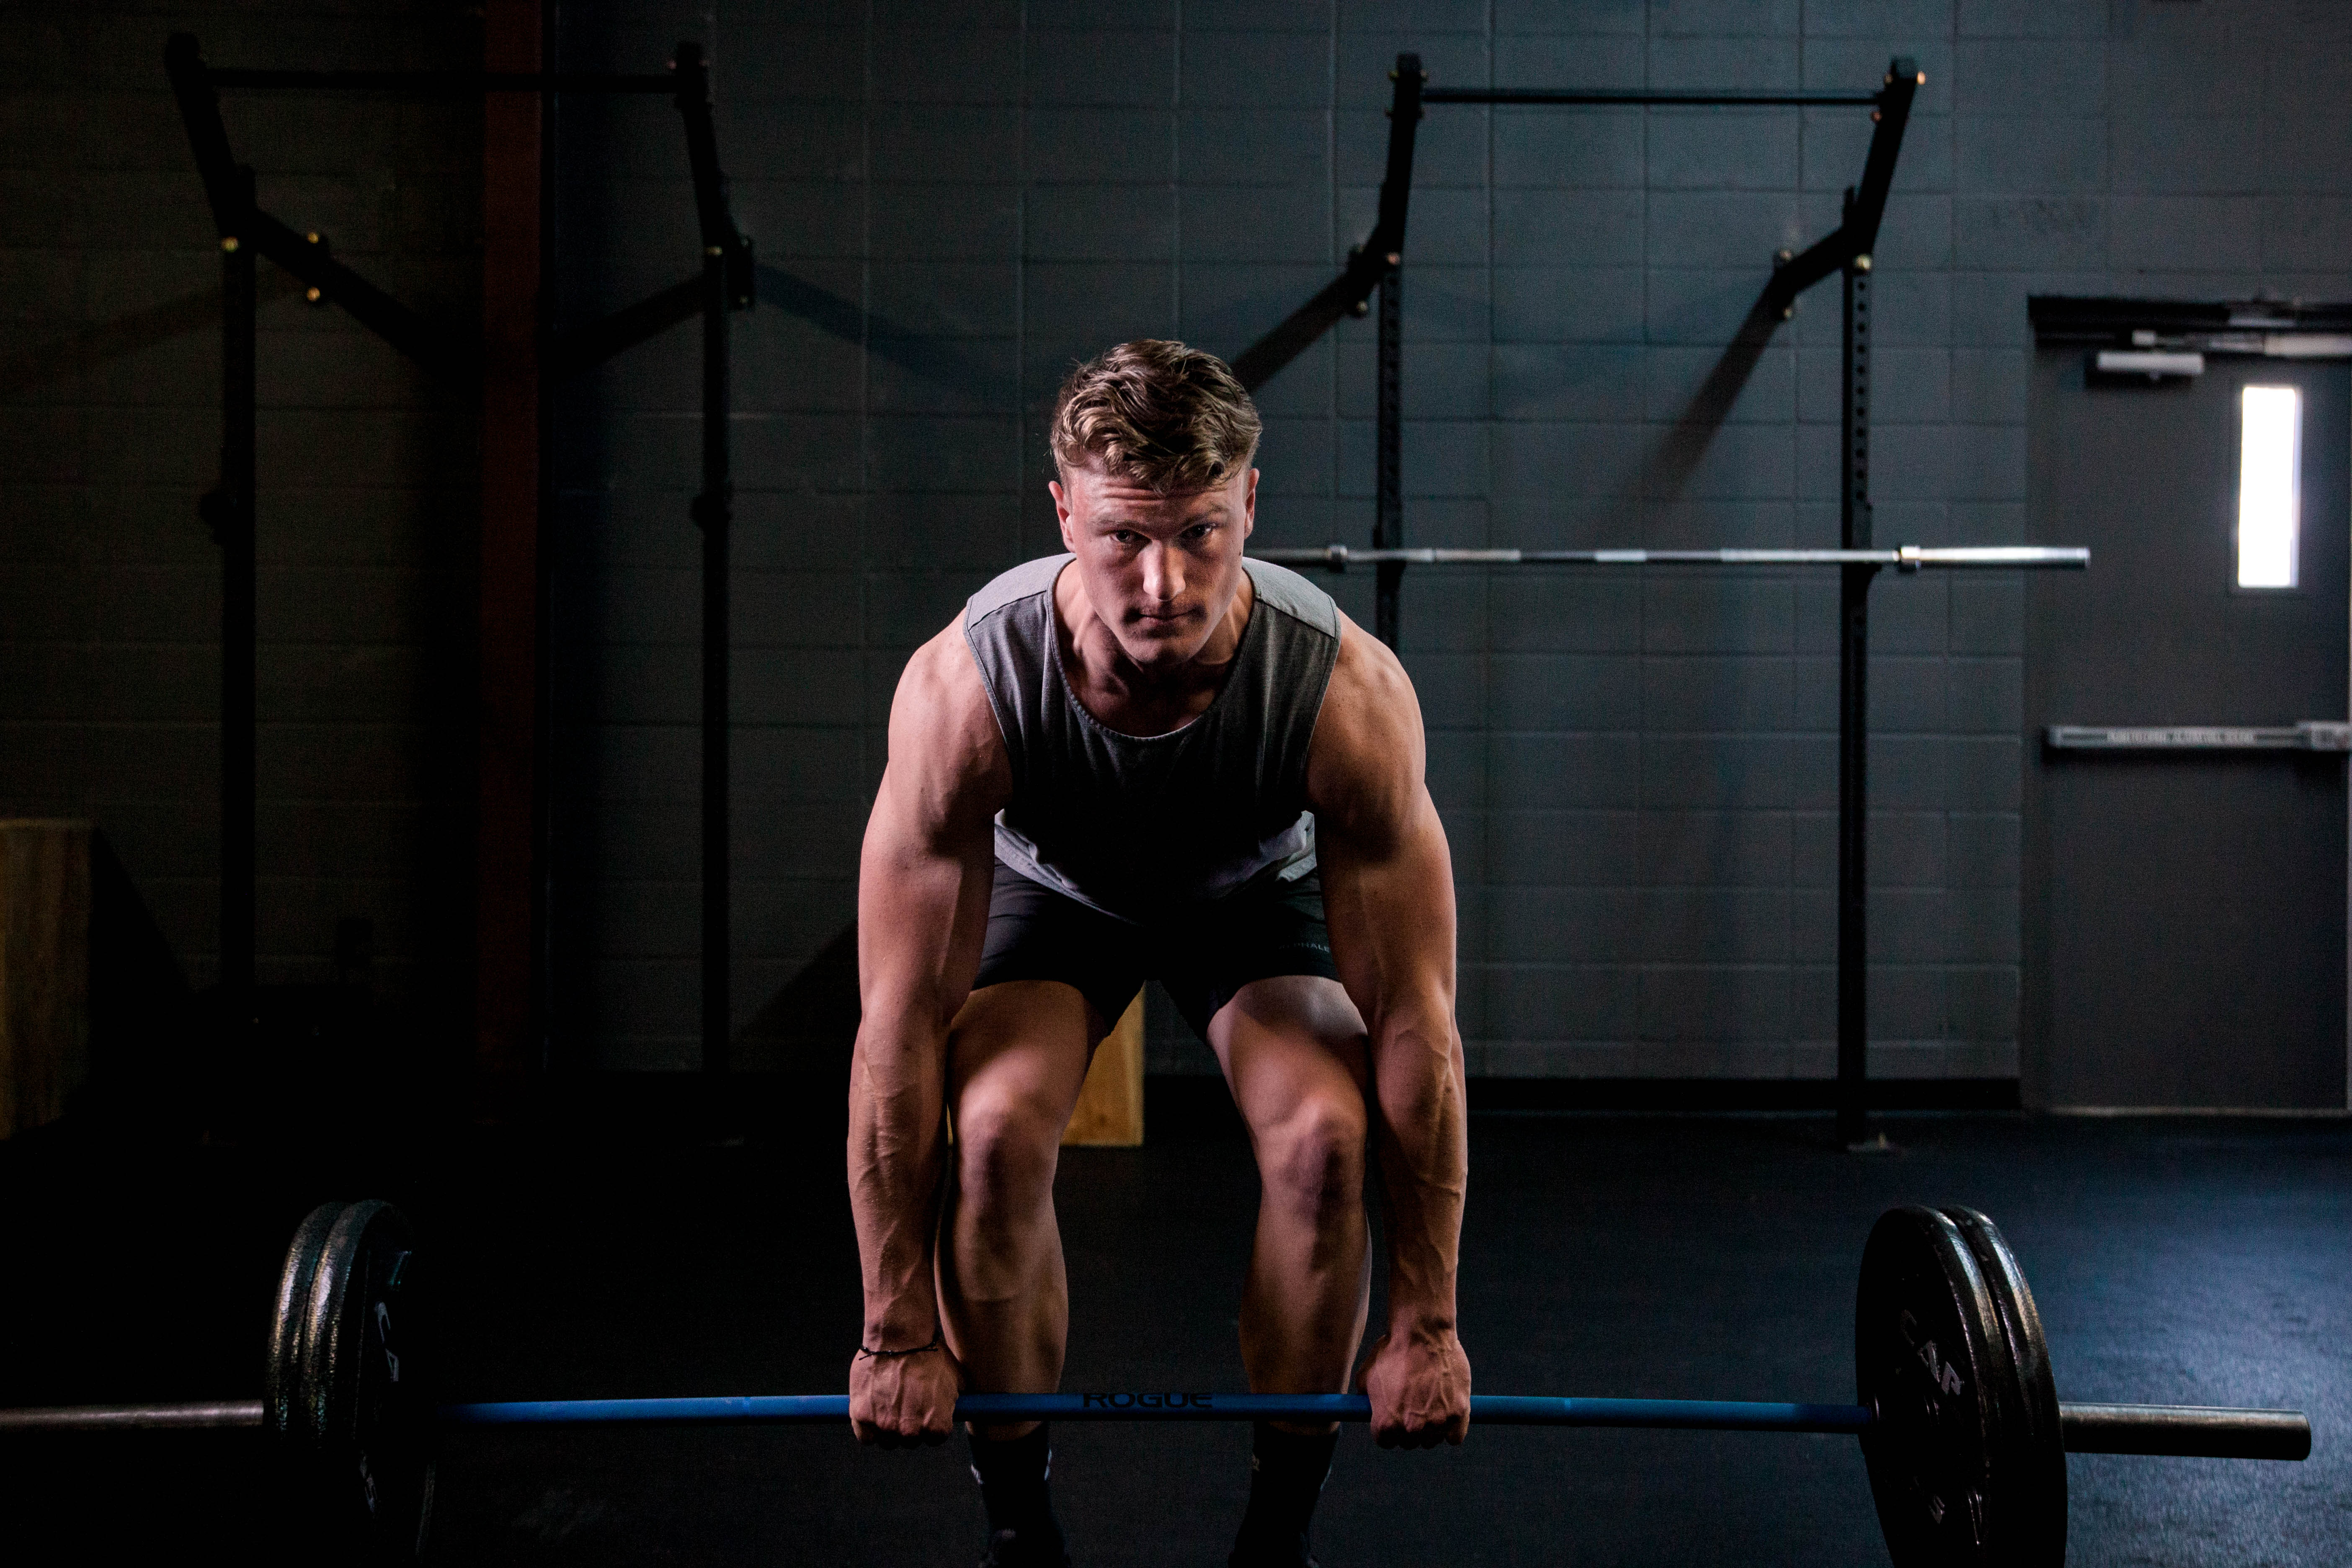 Best personal training gyms in Mobile, Alabama